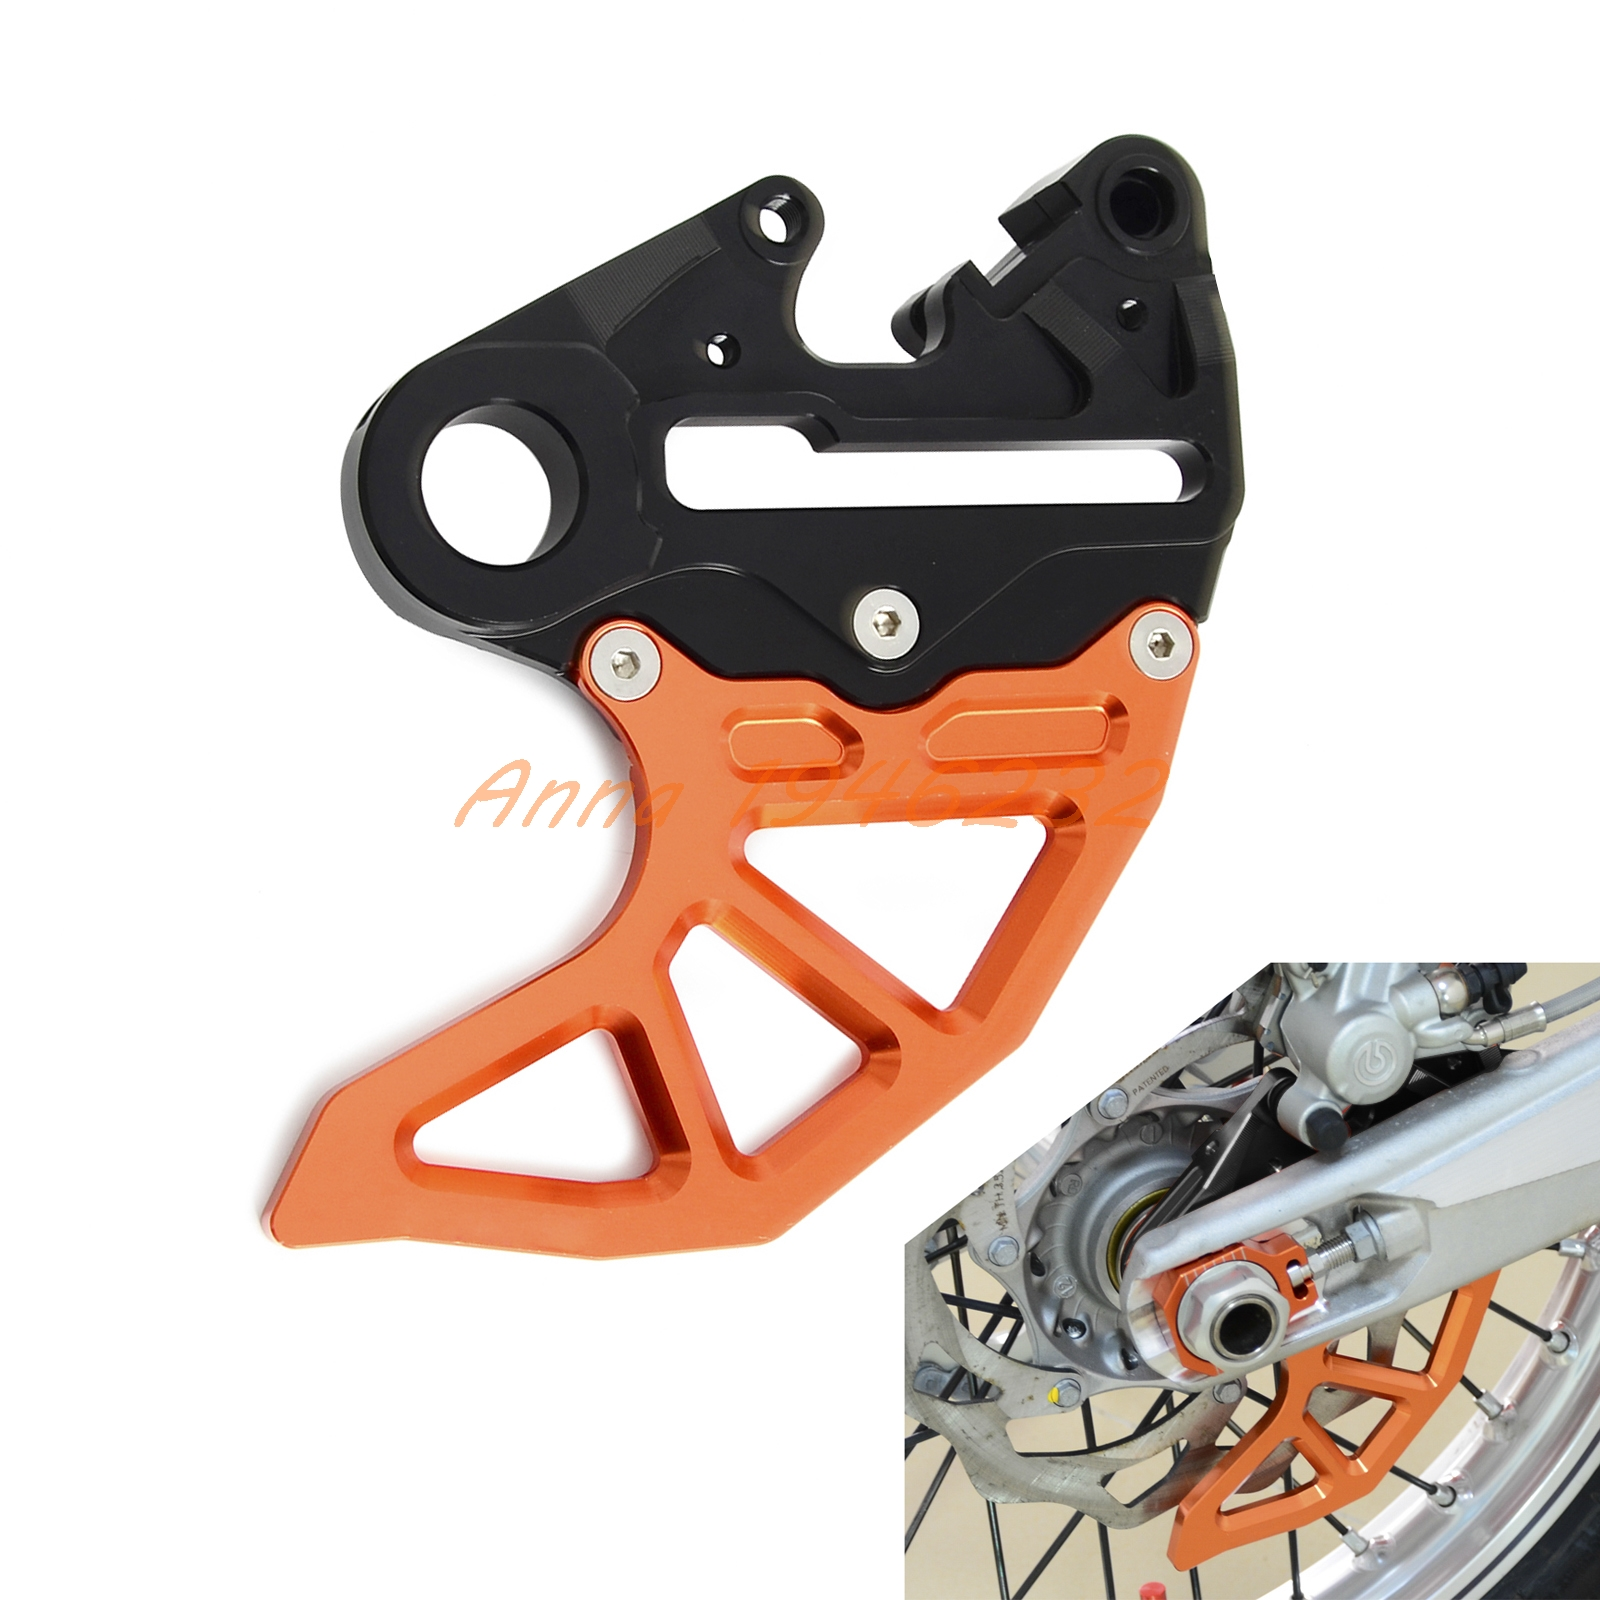 Rear Brake Disc Guard Caliper Support For KTM 125 200 250 300 390 450 530 SX SXF XC XCF EXC EXCF XCW XCFW 2004-2019 motorcycle front brake disc rotor guard brake cover brake protector for ktm 125 530 sx sxf xc xcf 03 14 125 530 exc excf 03 15